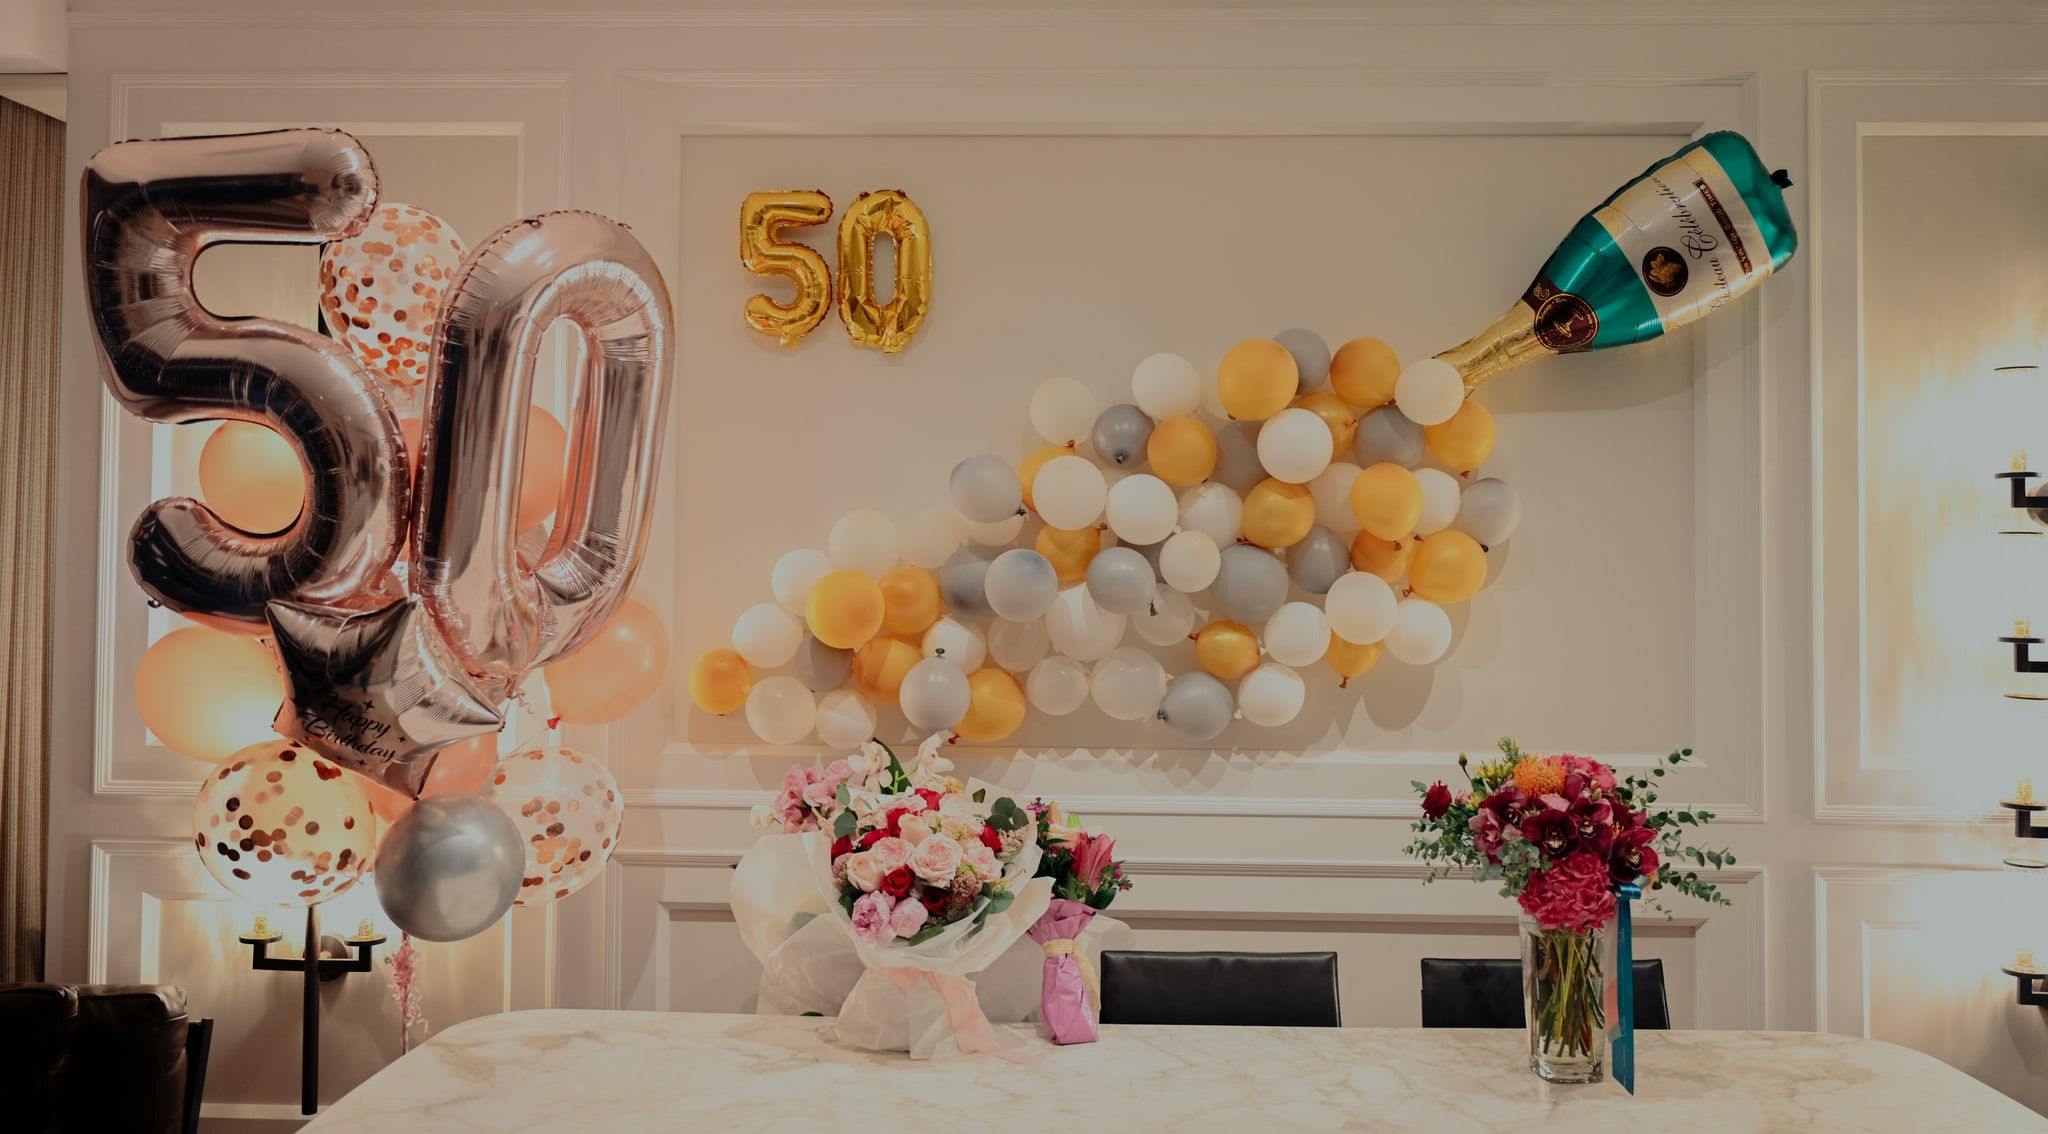 50th birthday centerpieces 50th centerpieces 50th birthday party 50th birthday decor gold 50th birthday party decorations 50th party decor